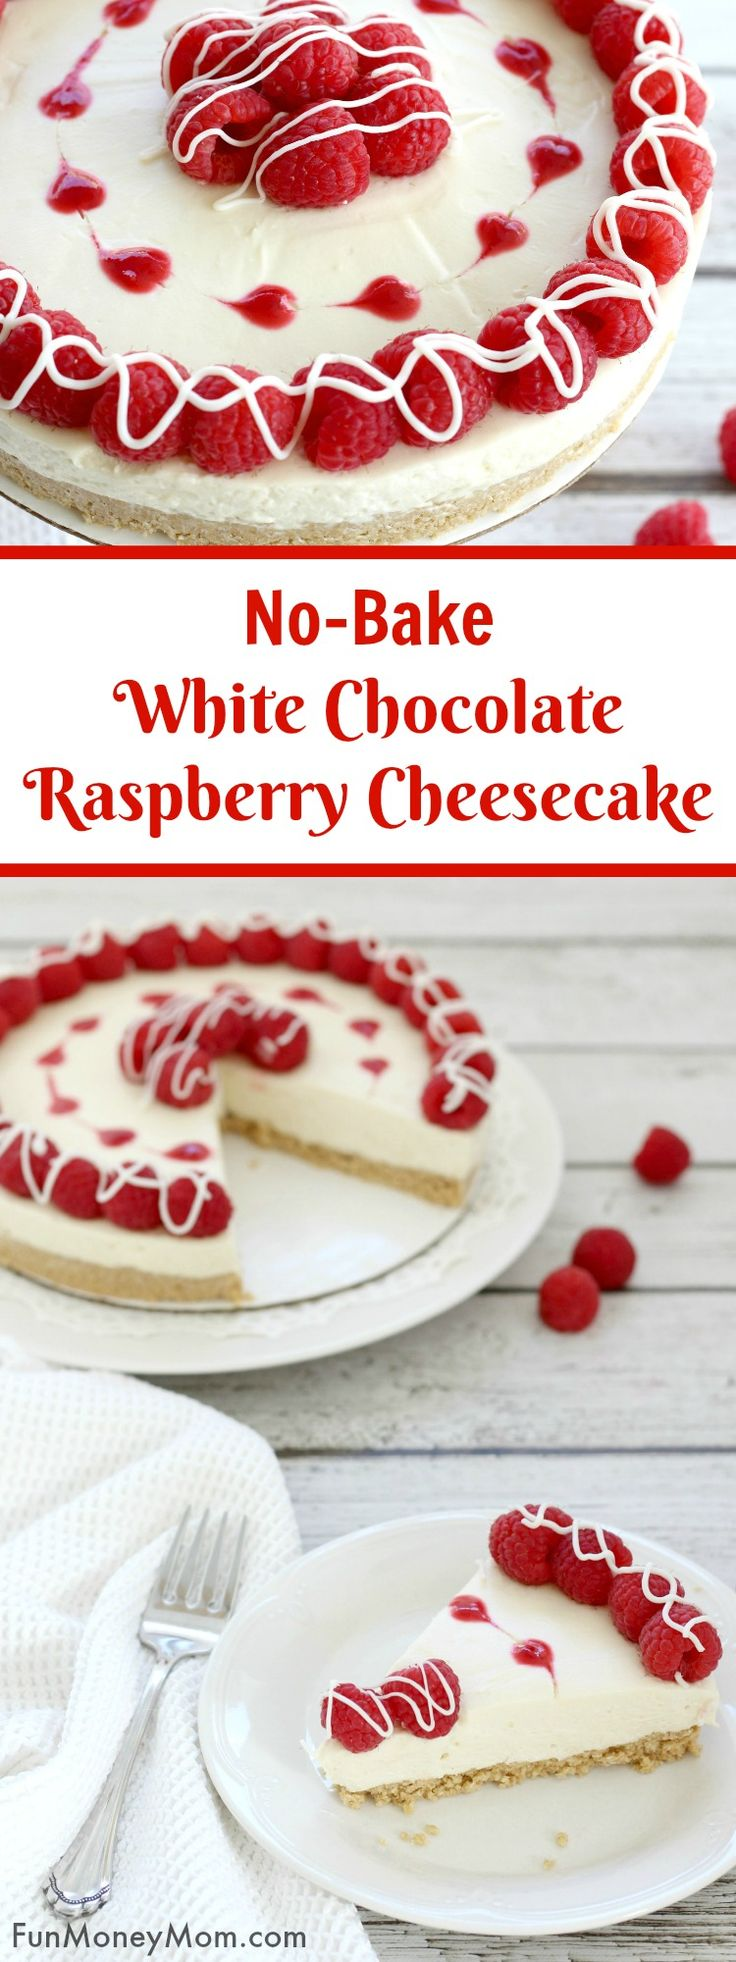 White Chocolate Raspberry Cheesecake - This no-bake cheesecake recipe is the perfect dessert for any occasion. It can be a Valentine's Day cake to show someone you love them or just an easy dessert recipe to enjoy when you're craving a sweet treat. Can you ever really go wrong with a white chocolate dessert?! via @funmoneymom